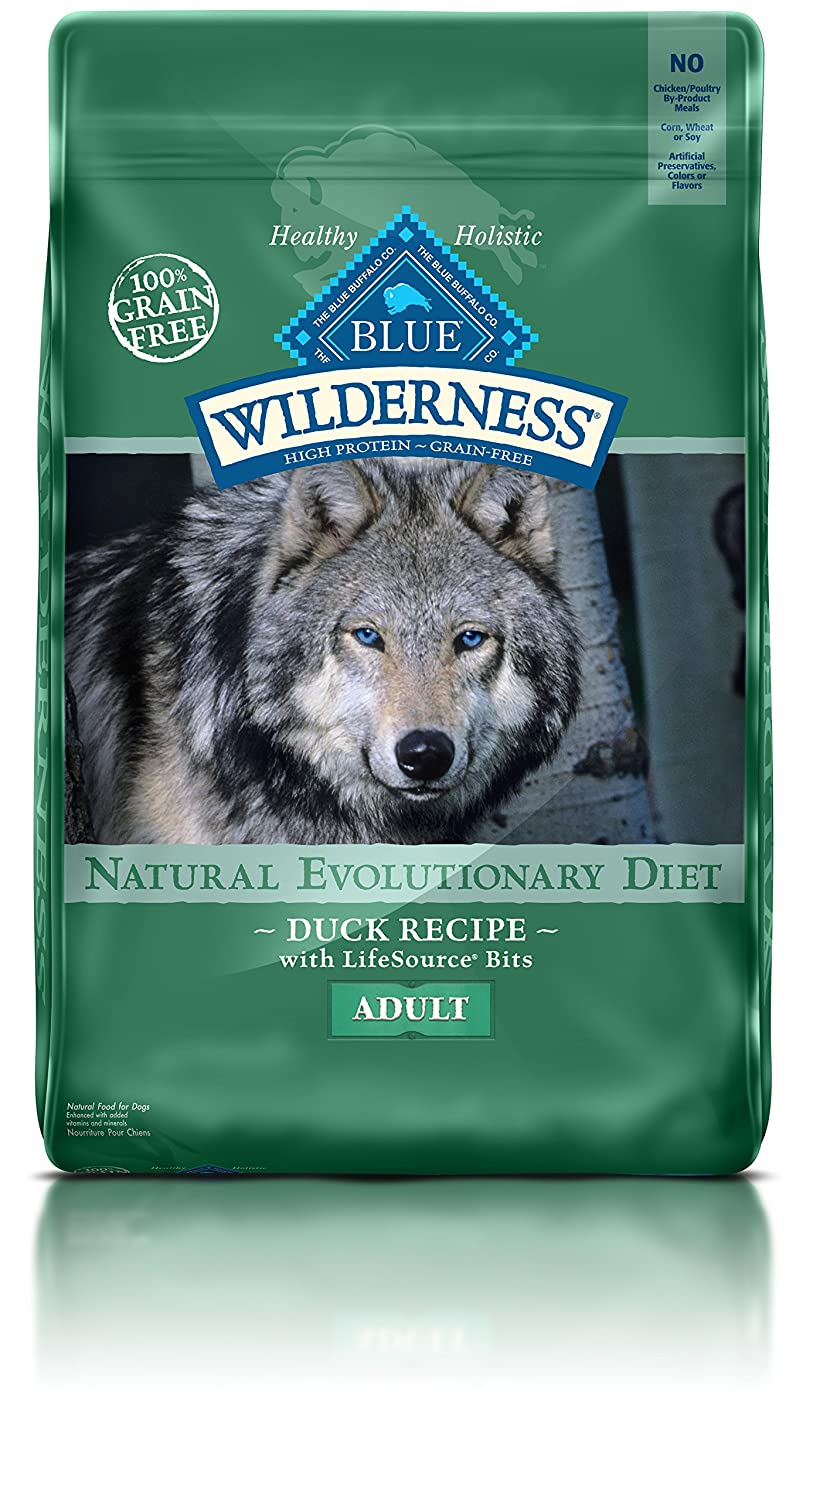 Who Has The Best Price On Blue Buffalo Dog Food